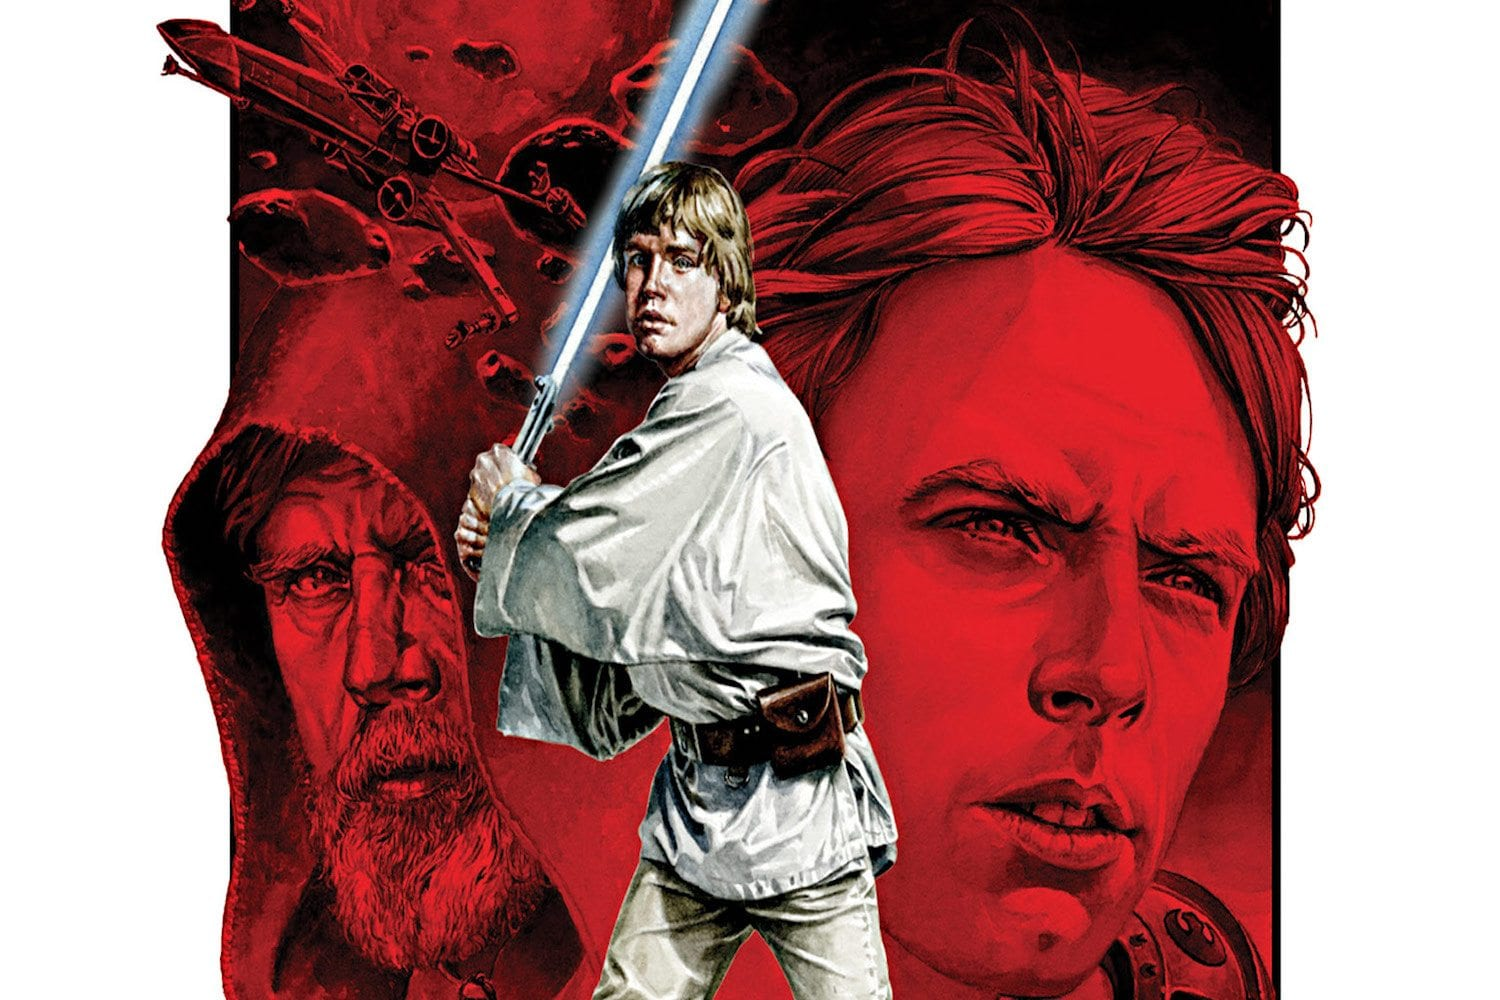 Image result for legends of luke skywalker illustrations